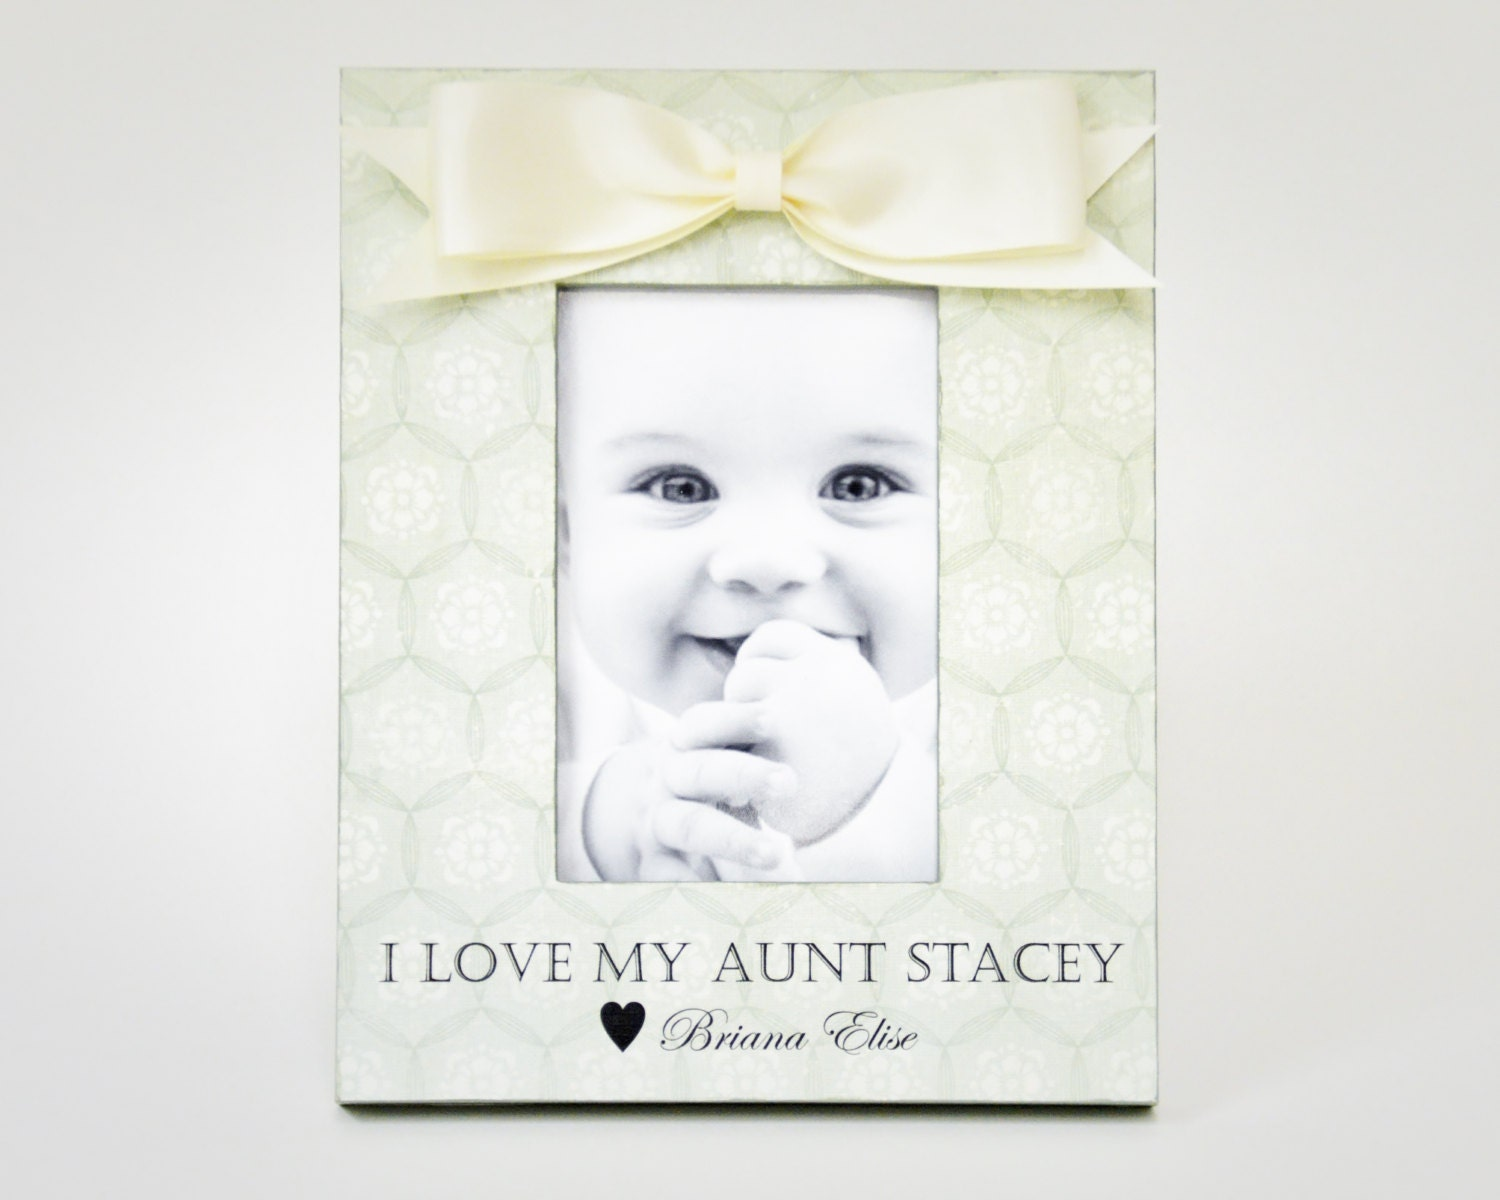 weird names confuse kids Try Aunt or Antie with her name or nick name Ihad a grand aunt we call Auntie or was it Aunt T Her name was May Bell but went by T. She raised my dad after his mom died so maybe the T was from aunt and theyjust used the T Give your kid a break, use a simple name.